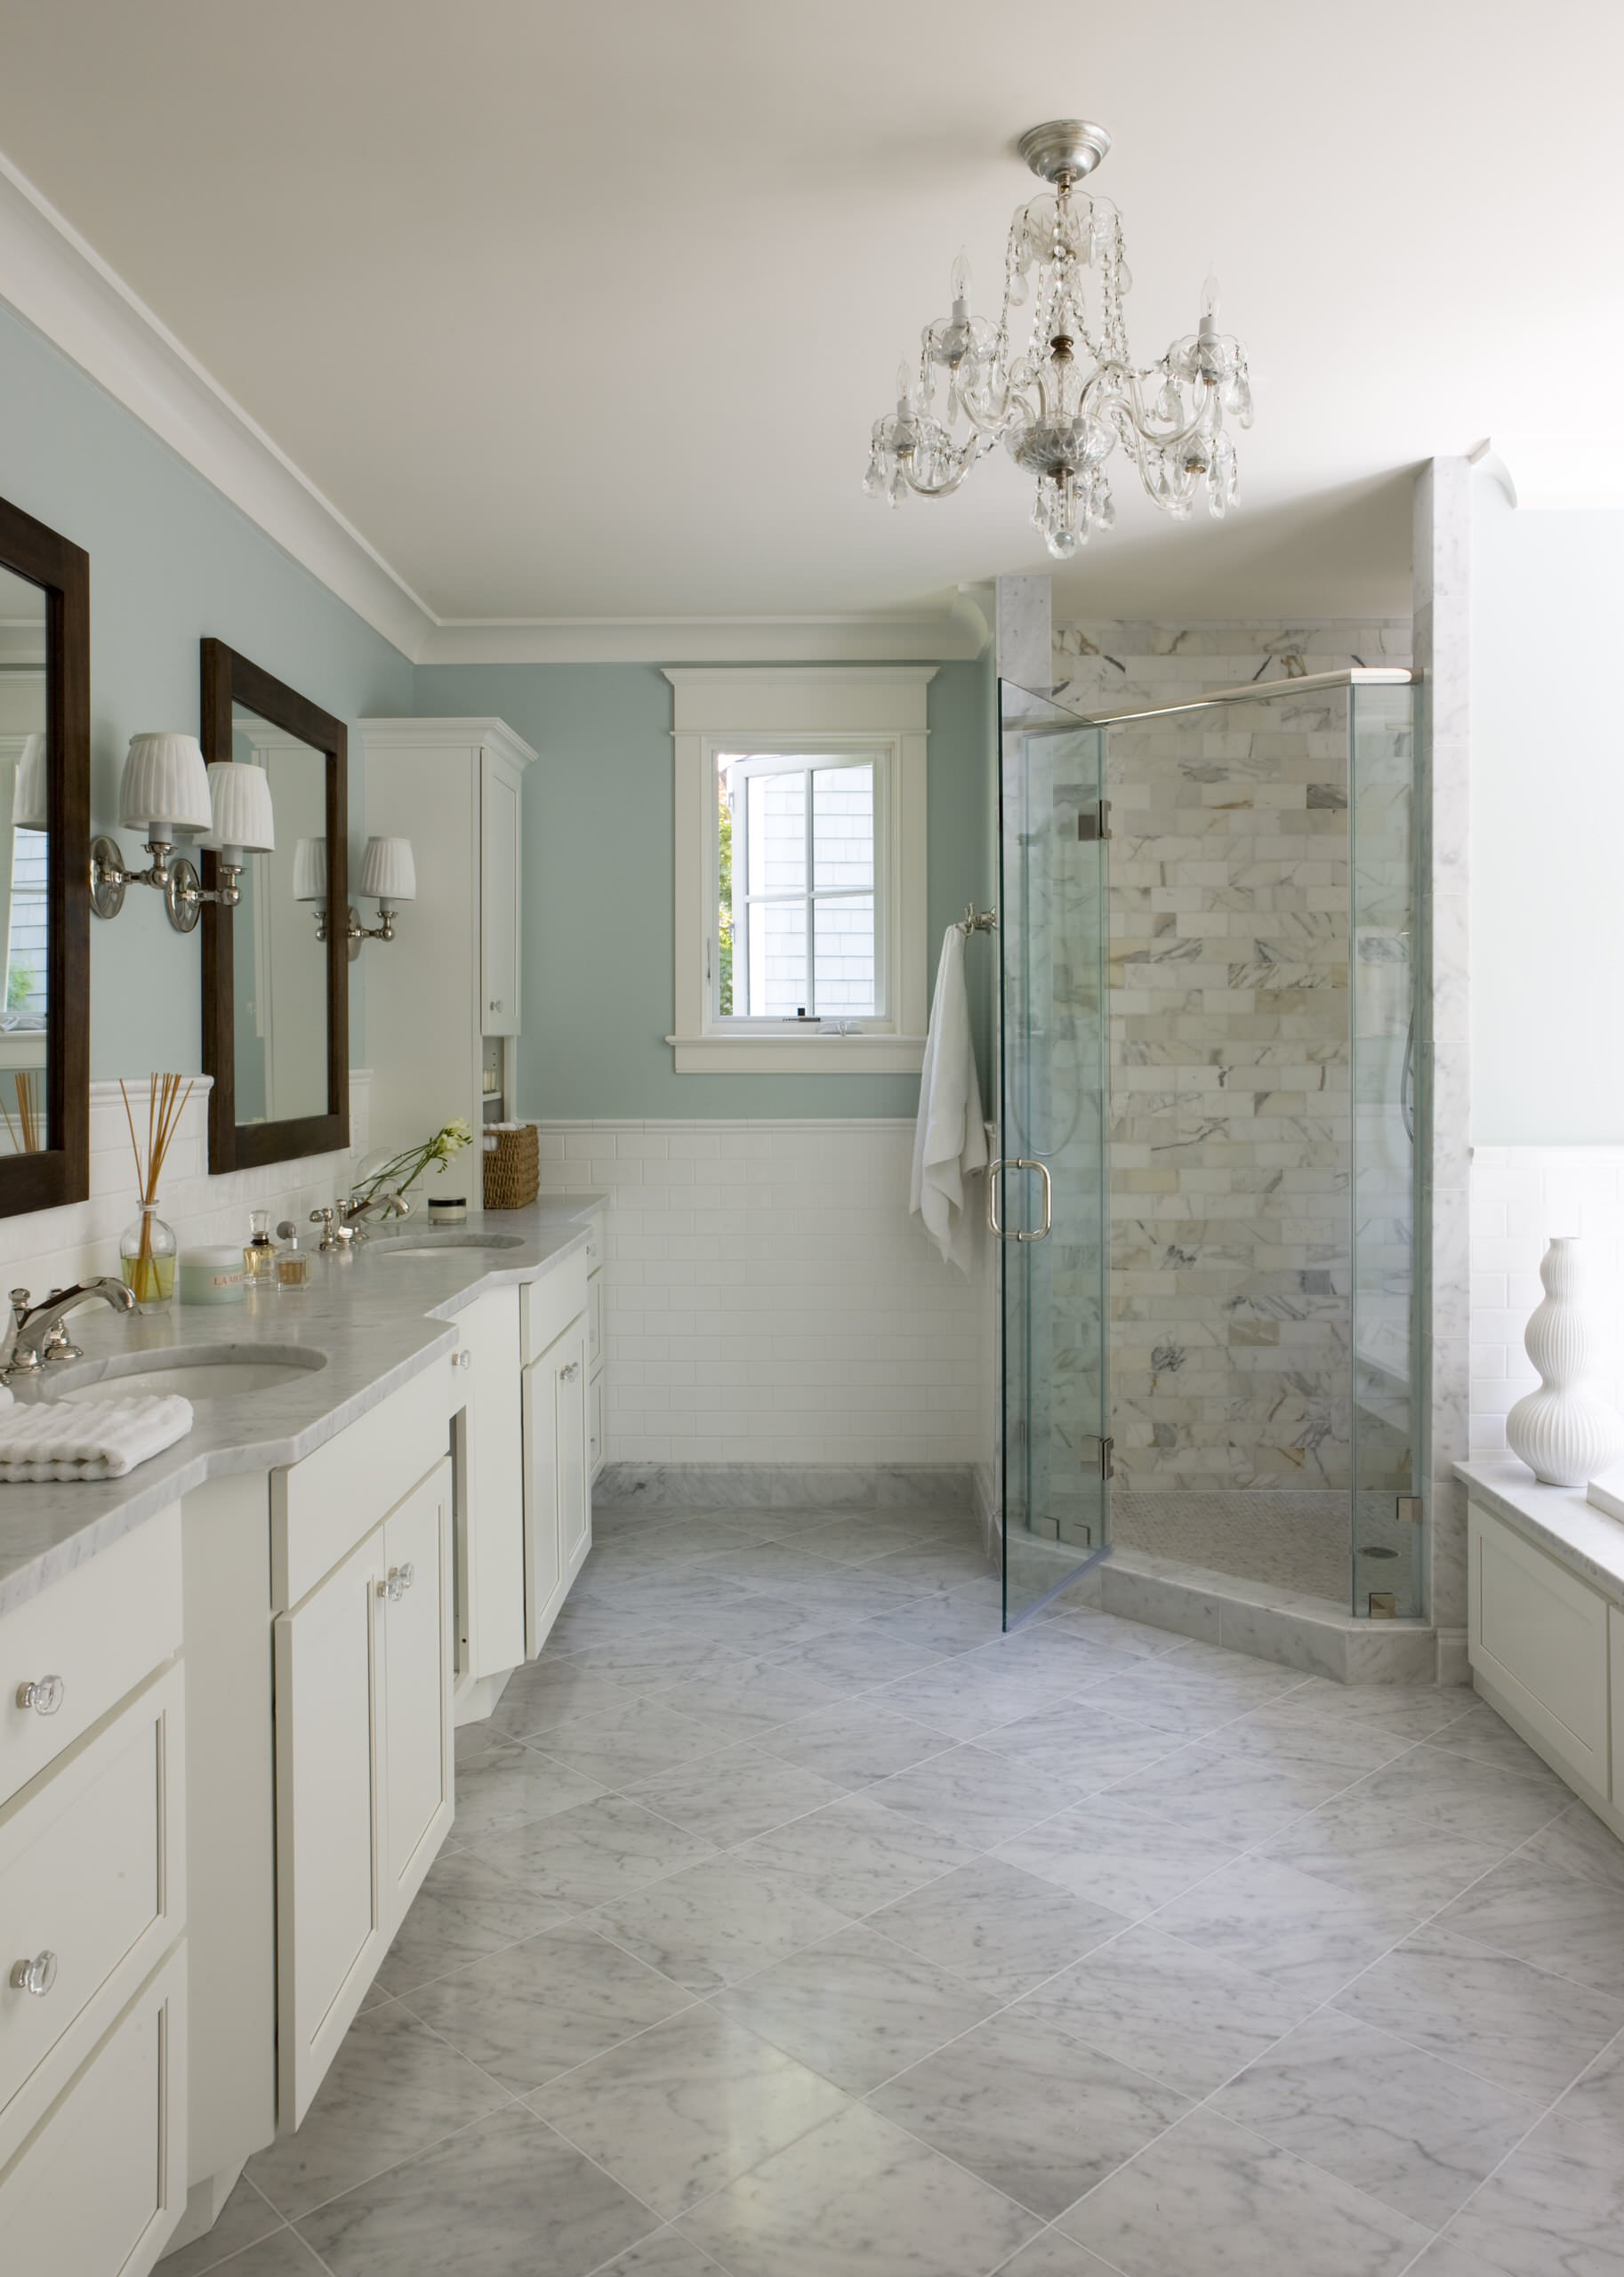 What color should i paint my house Traditional Bathroom light blue wall double sink, double vanity white tile wall